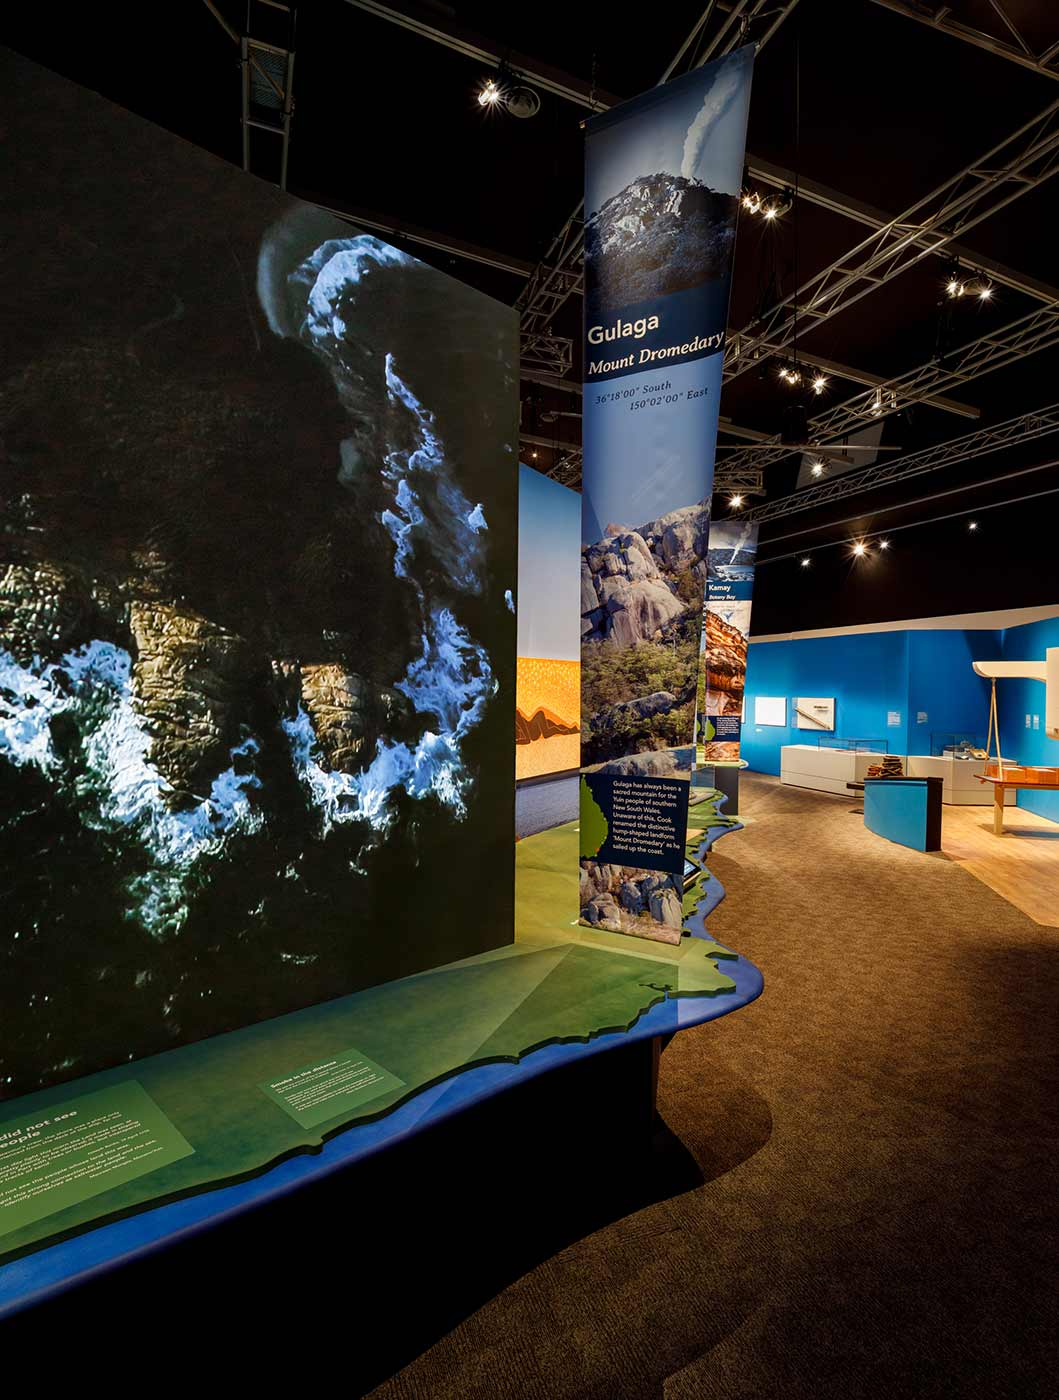 Interior view of a museum exhibition with a large image of a coastline in the foreground and a section featuring parts of a ship's interior in the distance. - click to view larger image